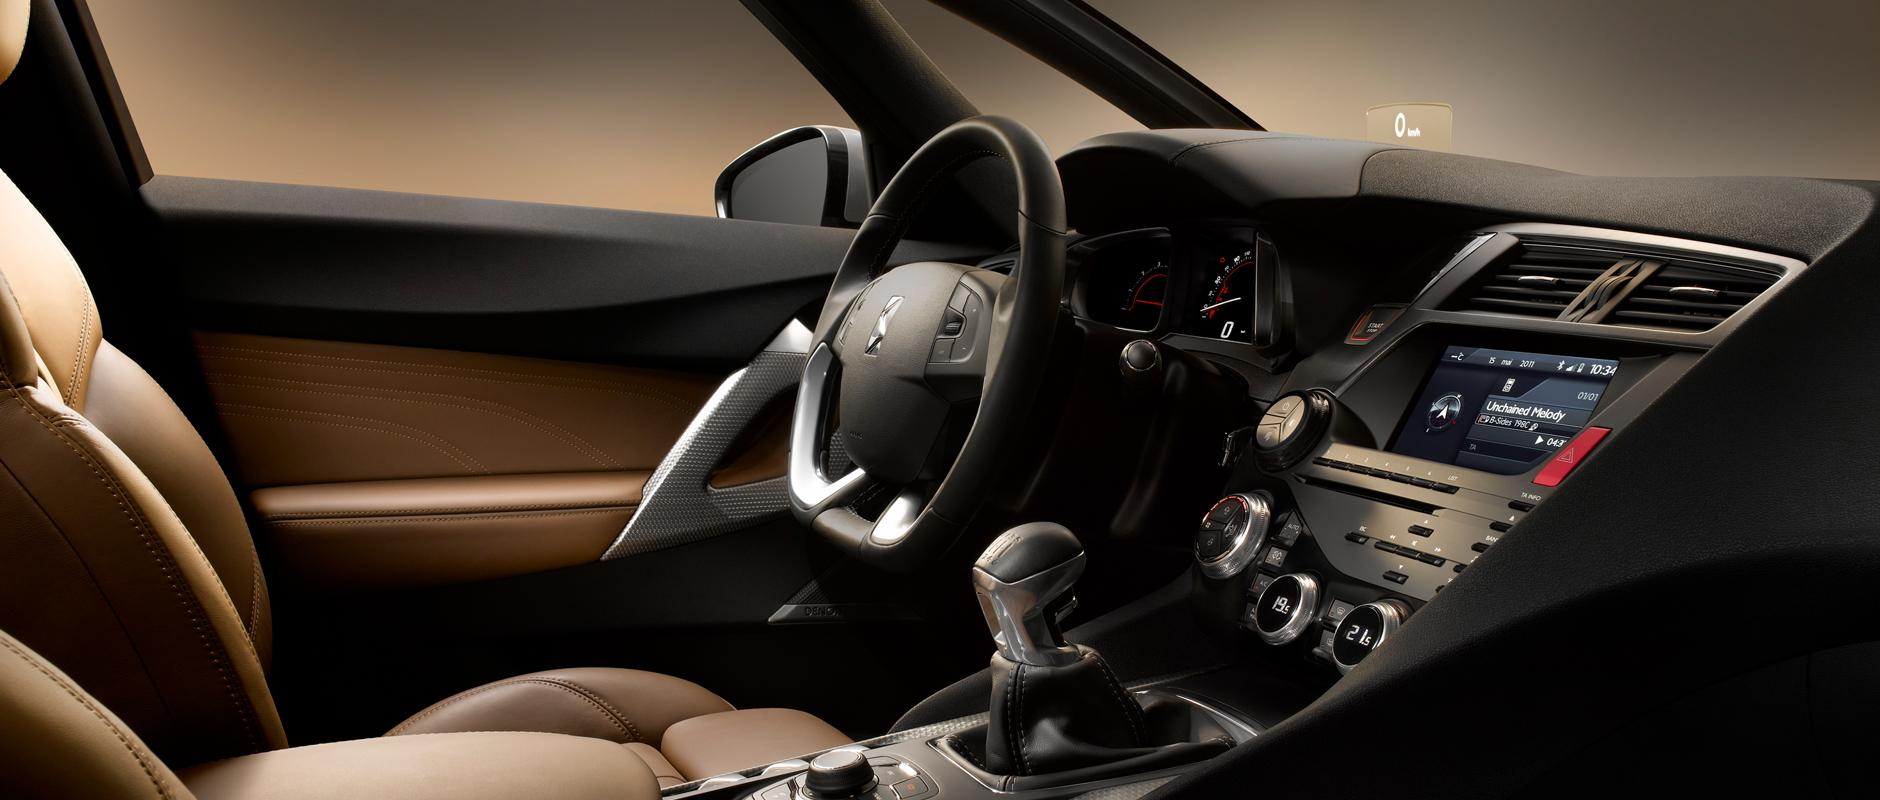 Pictures of citroen ds5 #11